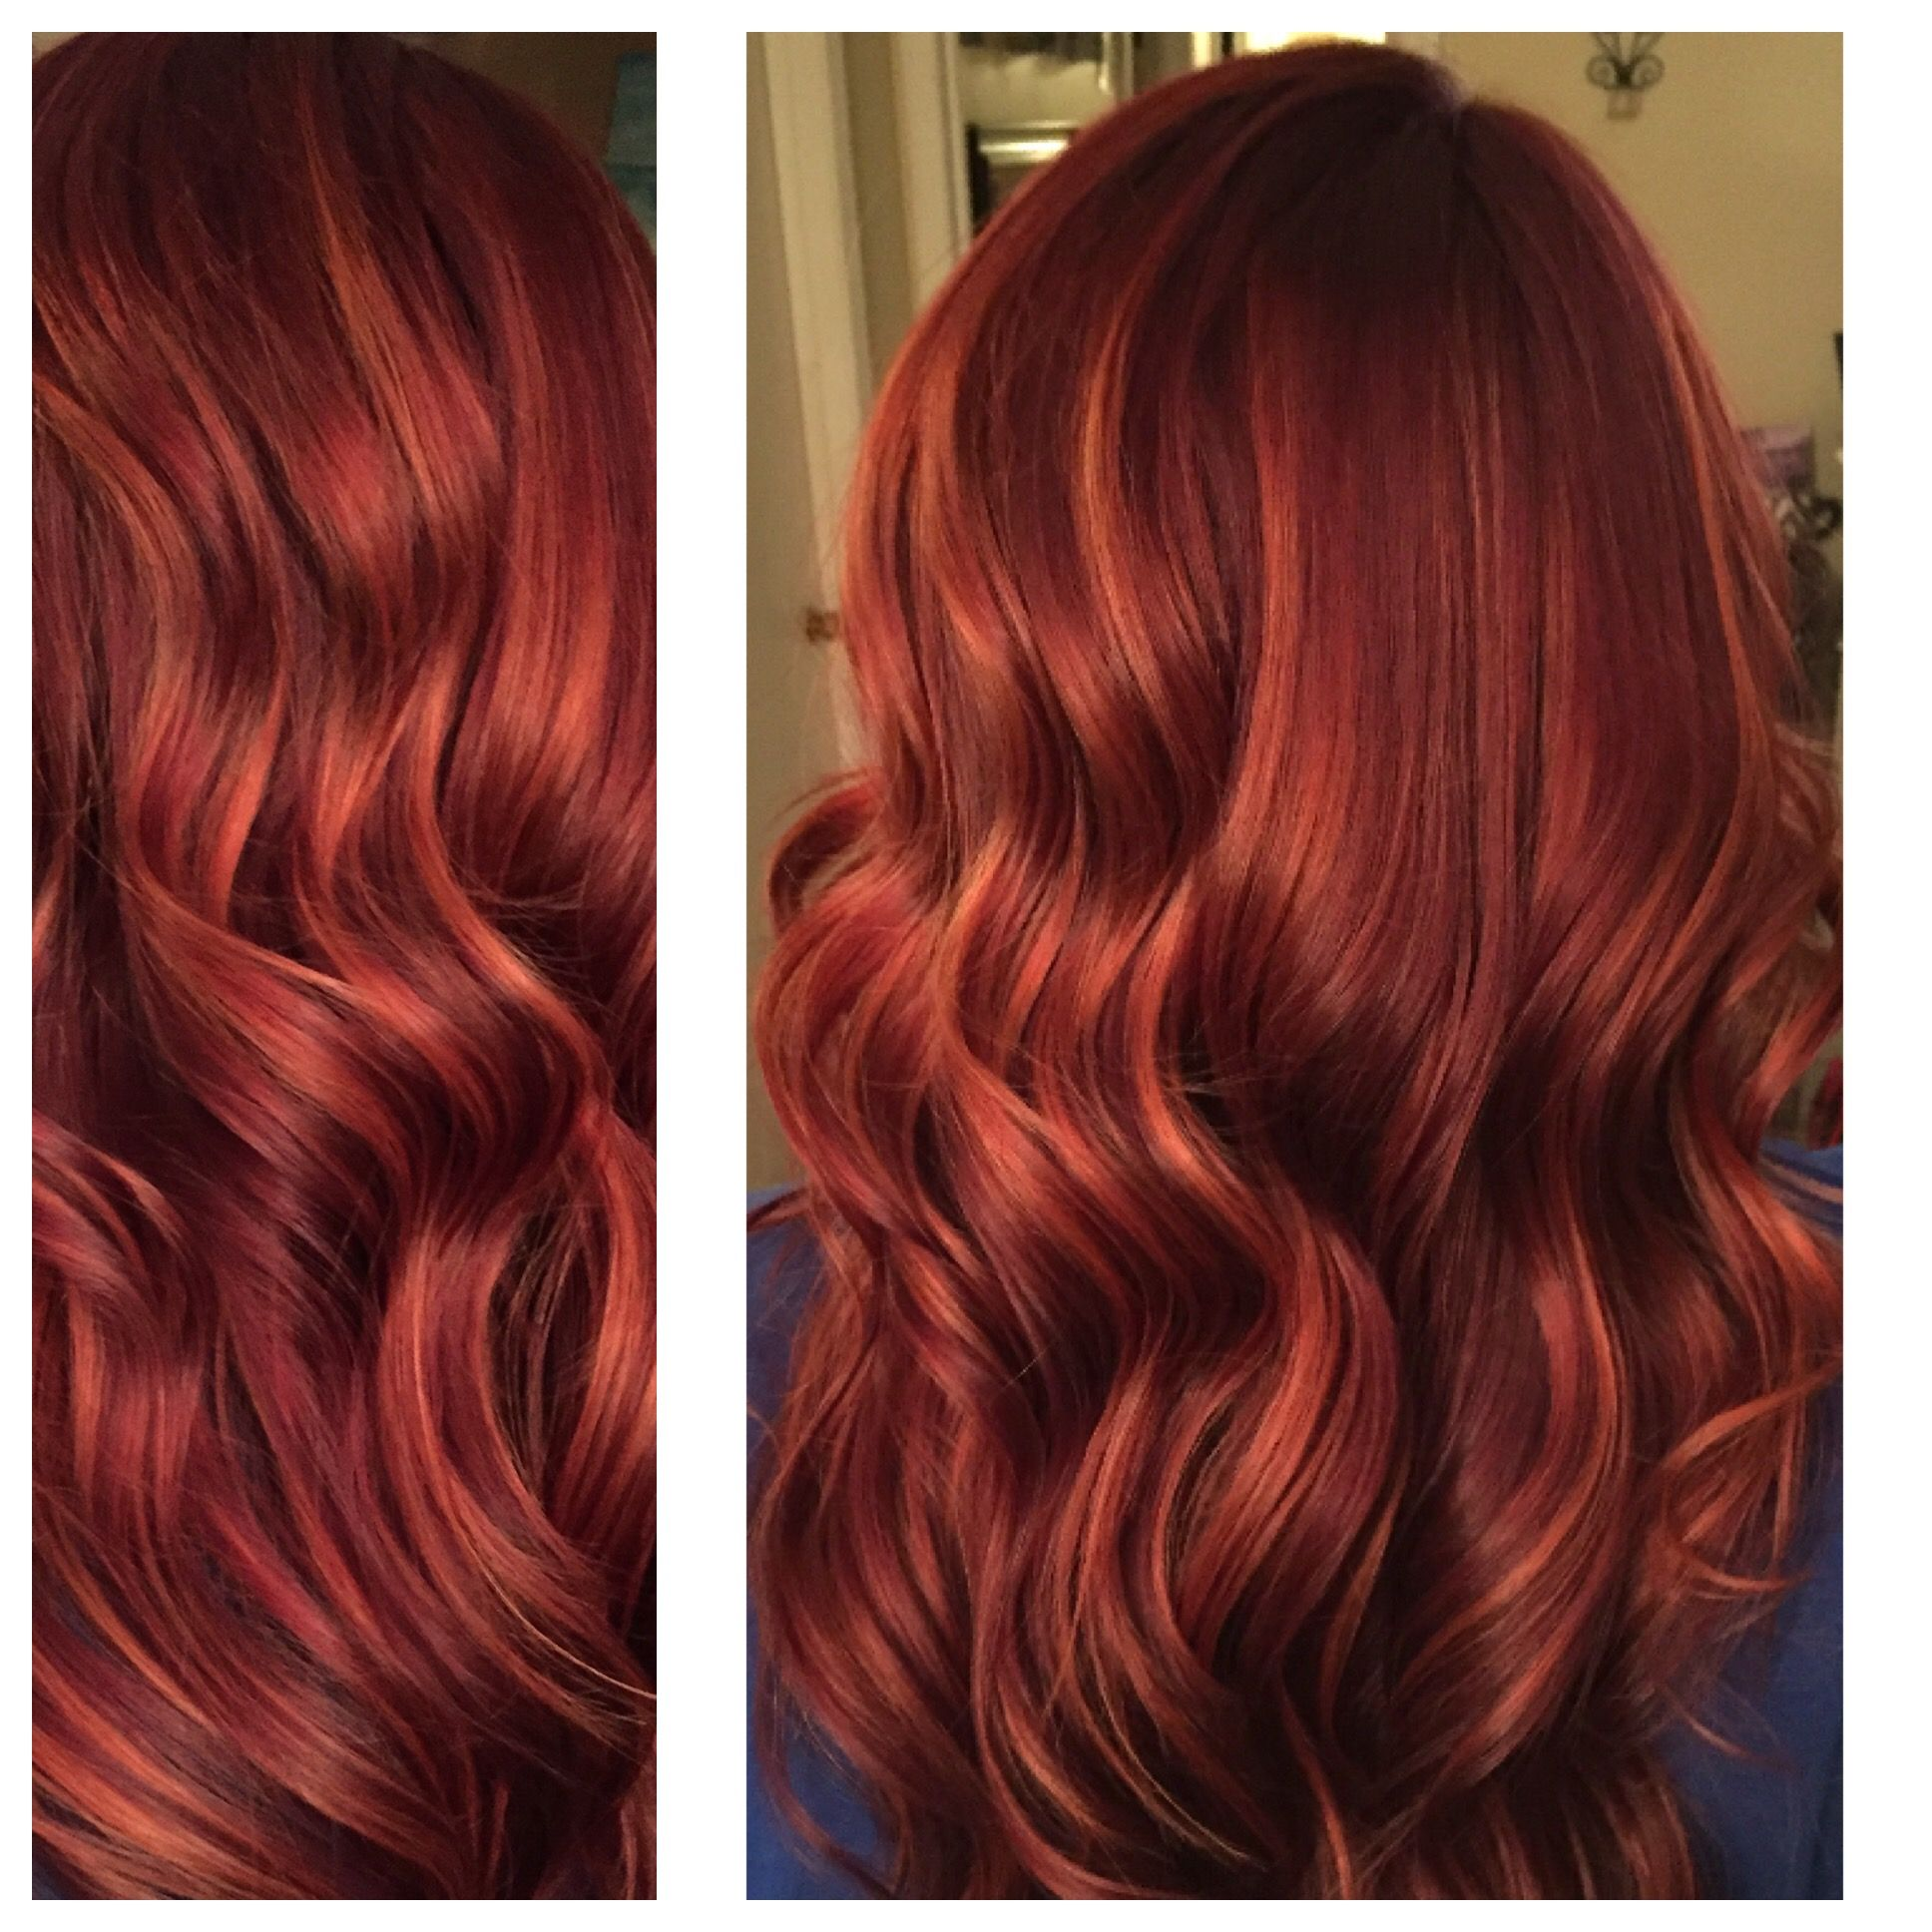 #redhead #copperbalayage #copper #redbalayage #highlights #redhair #behindthechair #modernsalon #colorist #beauty #hair #copperbalayage